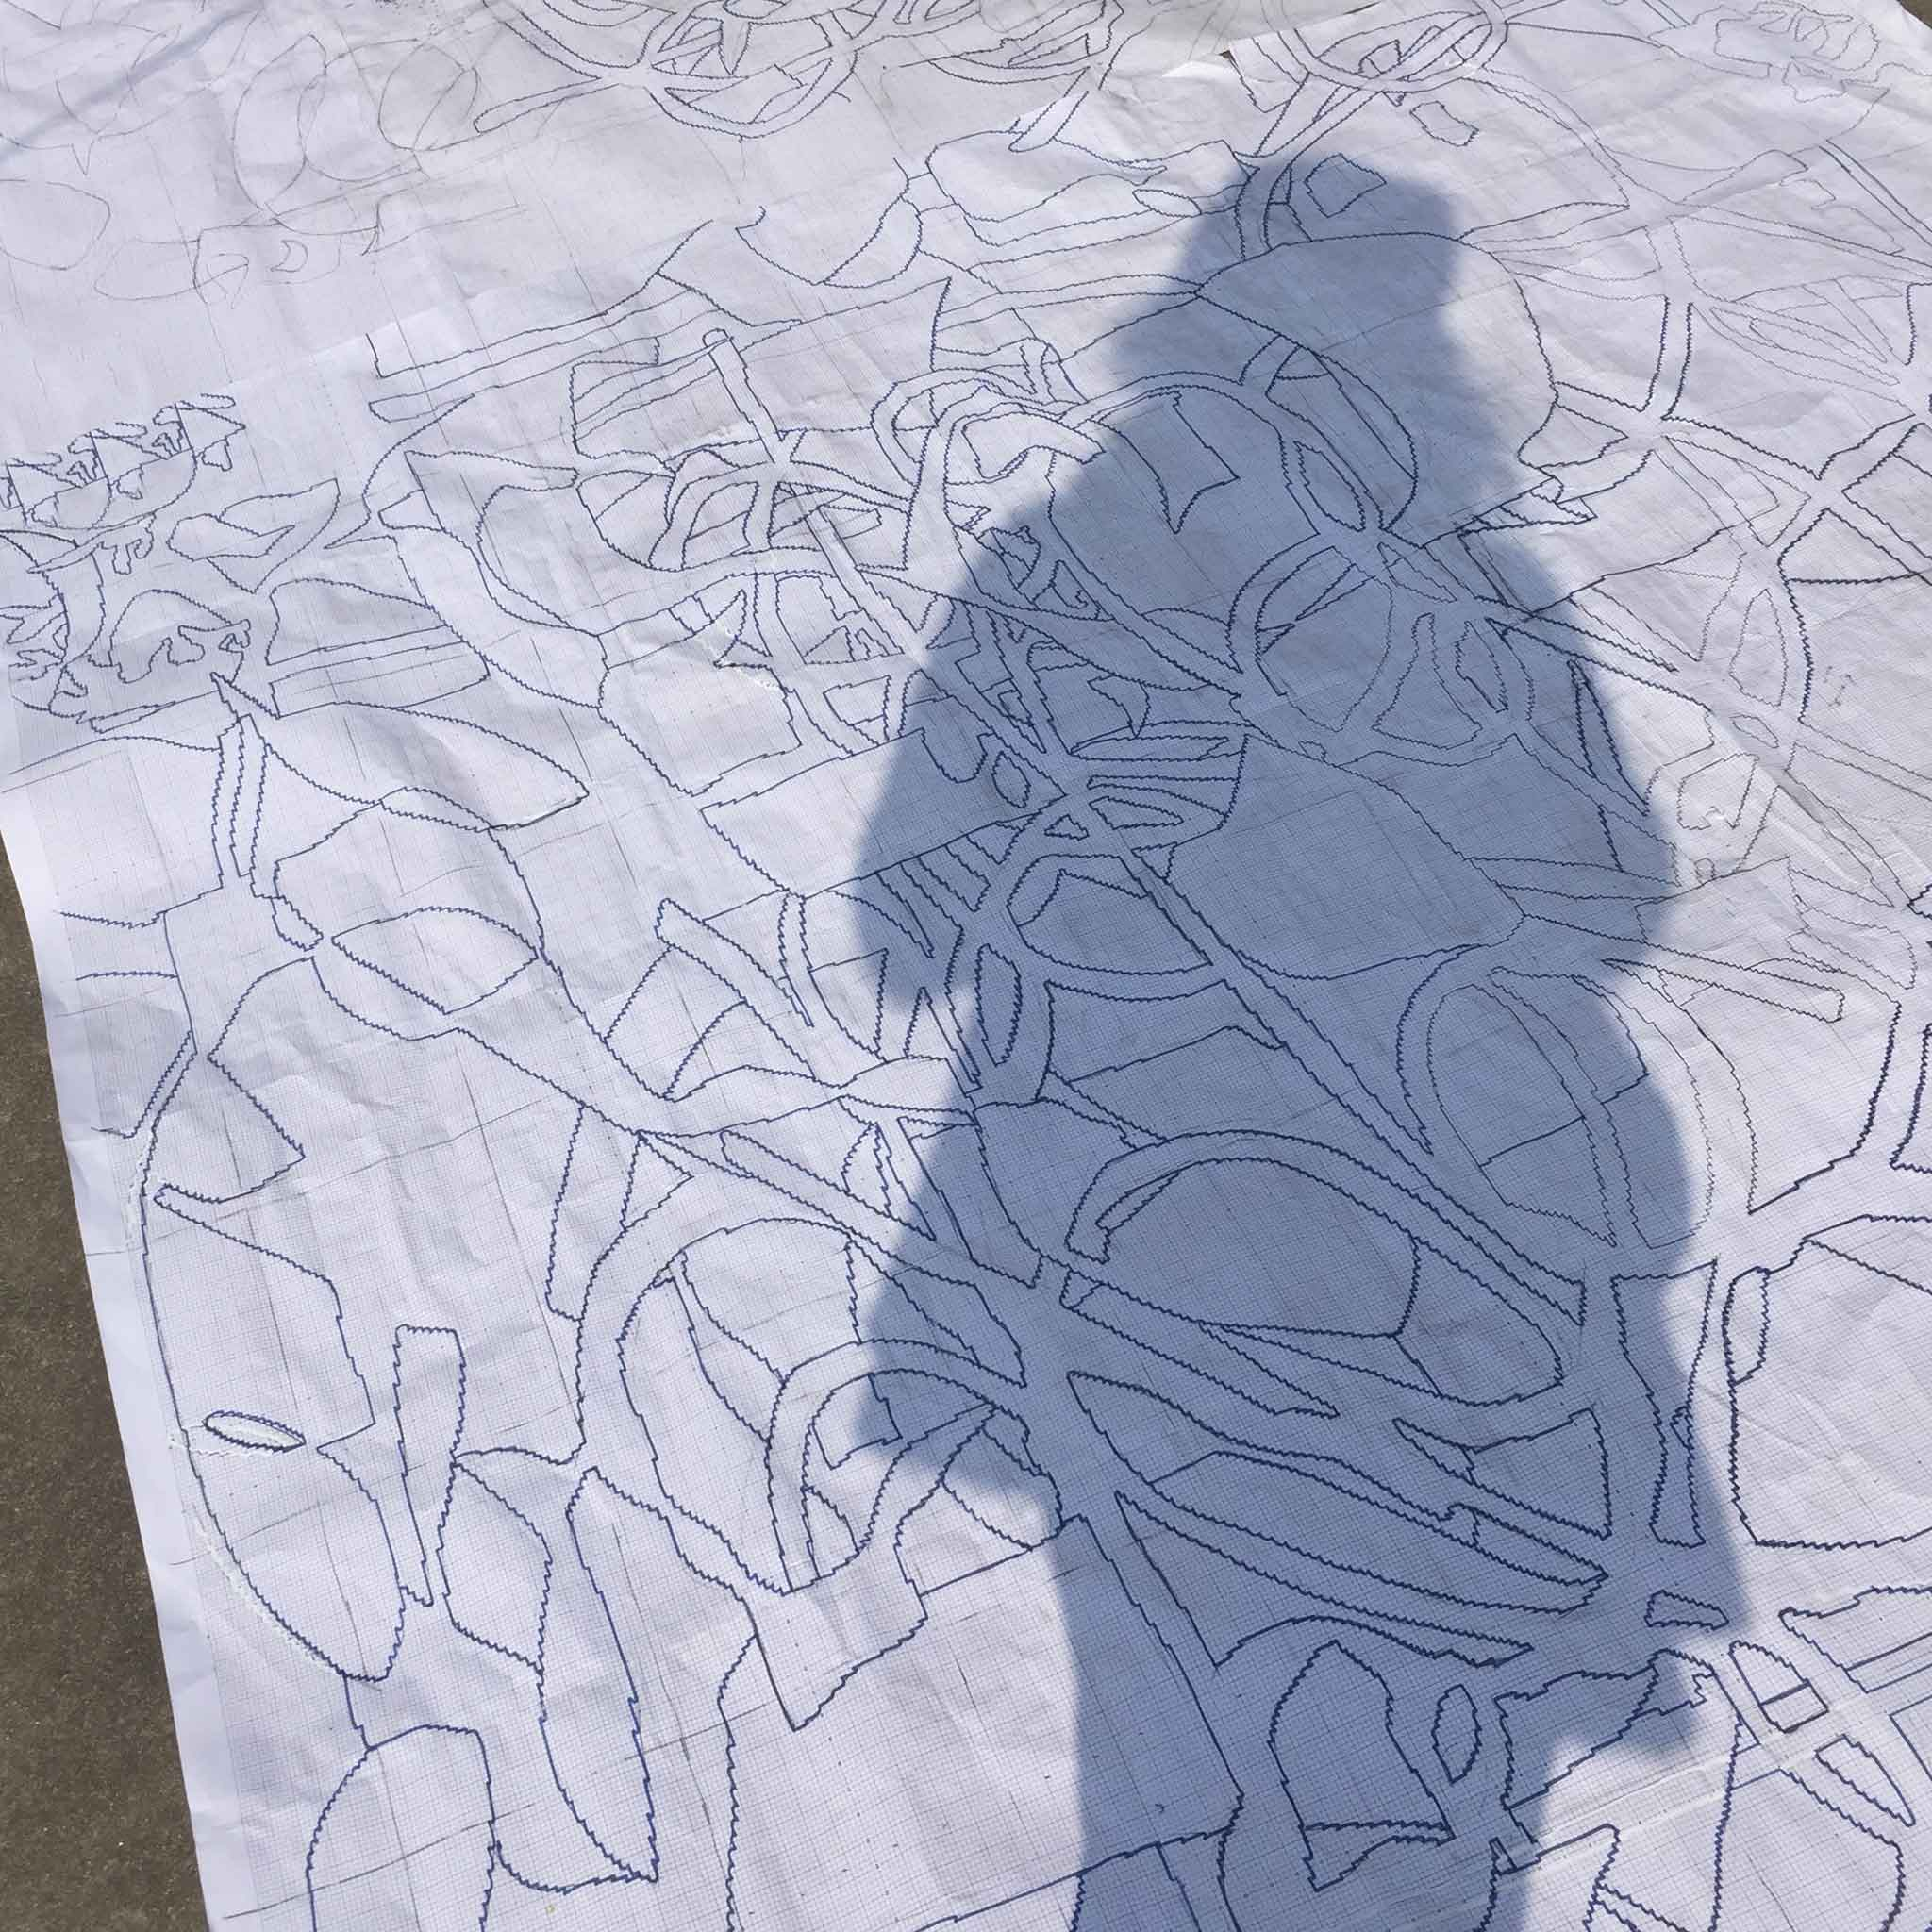 'Ghost in the Machine' - Amy Helfand posses in a 'selfie' while inspecting a graph in Nepal in early 2016. | Image courtesy of Amy Helfand.